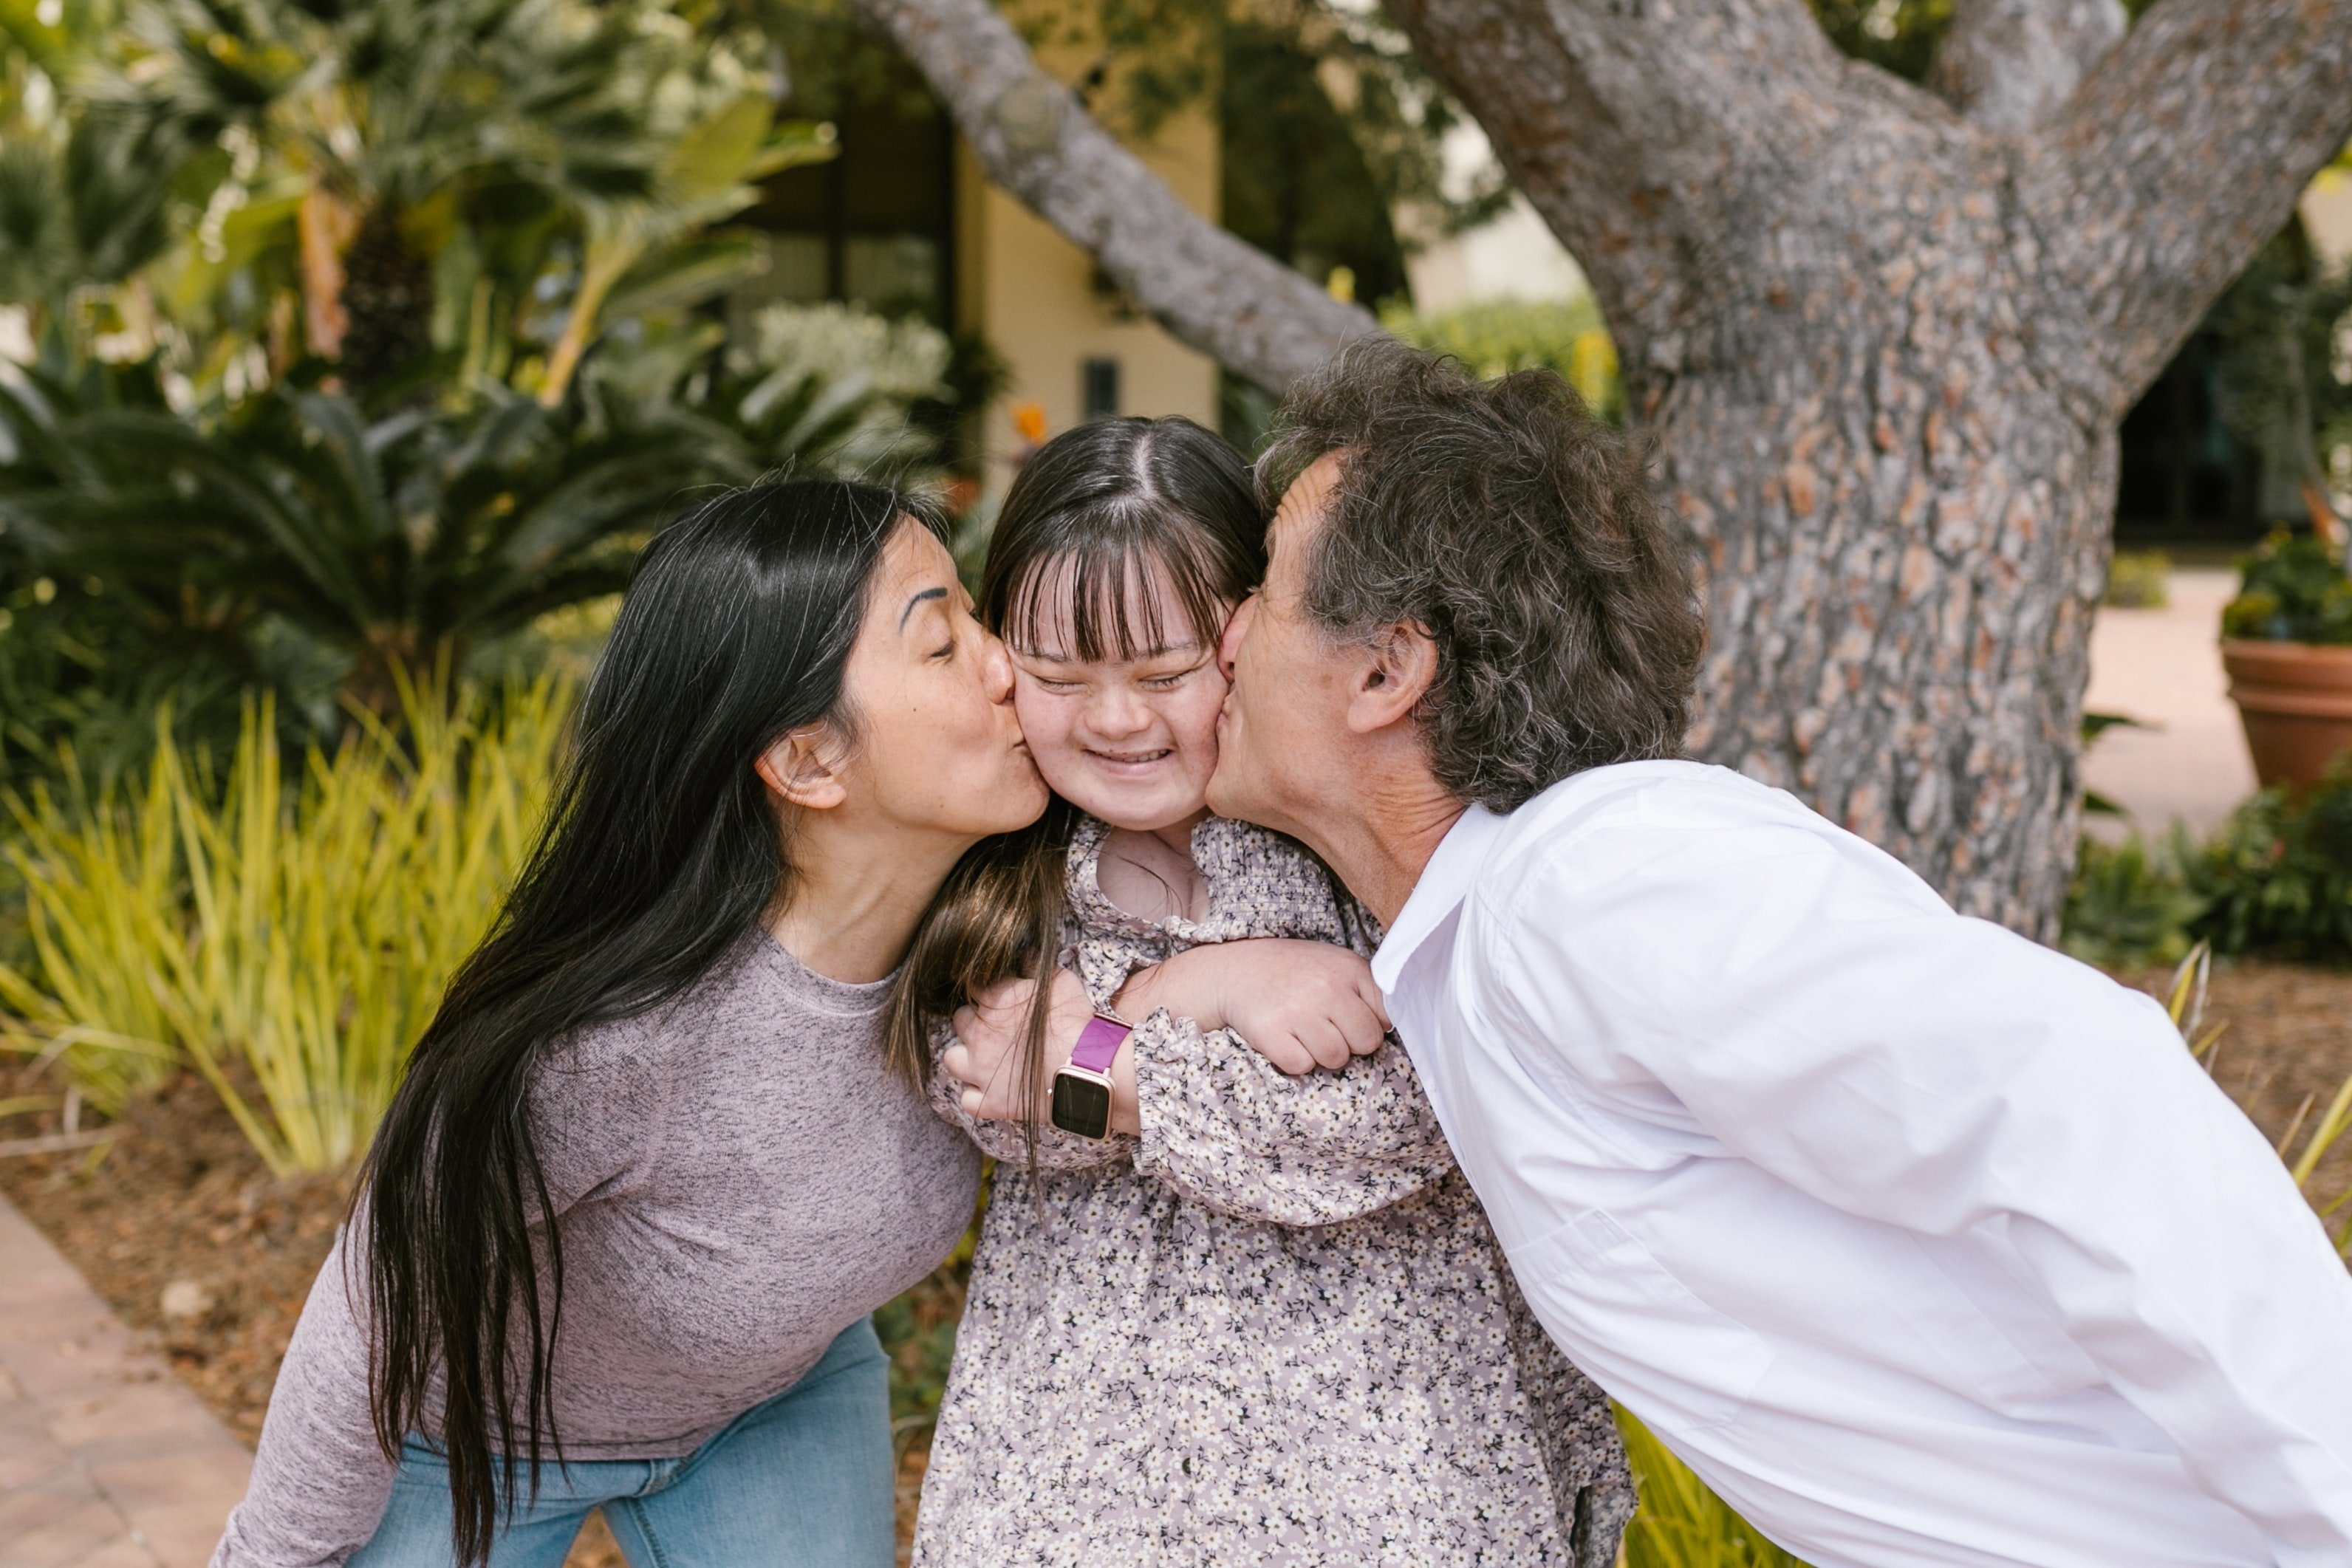 Couple kiss their daughter | Photo: Pexels